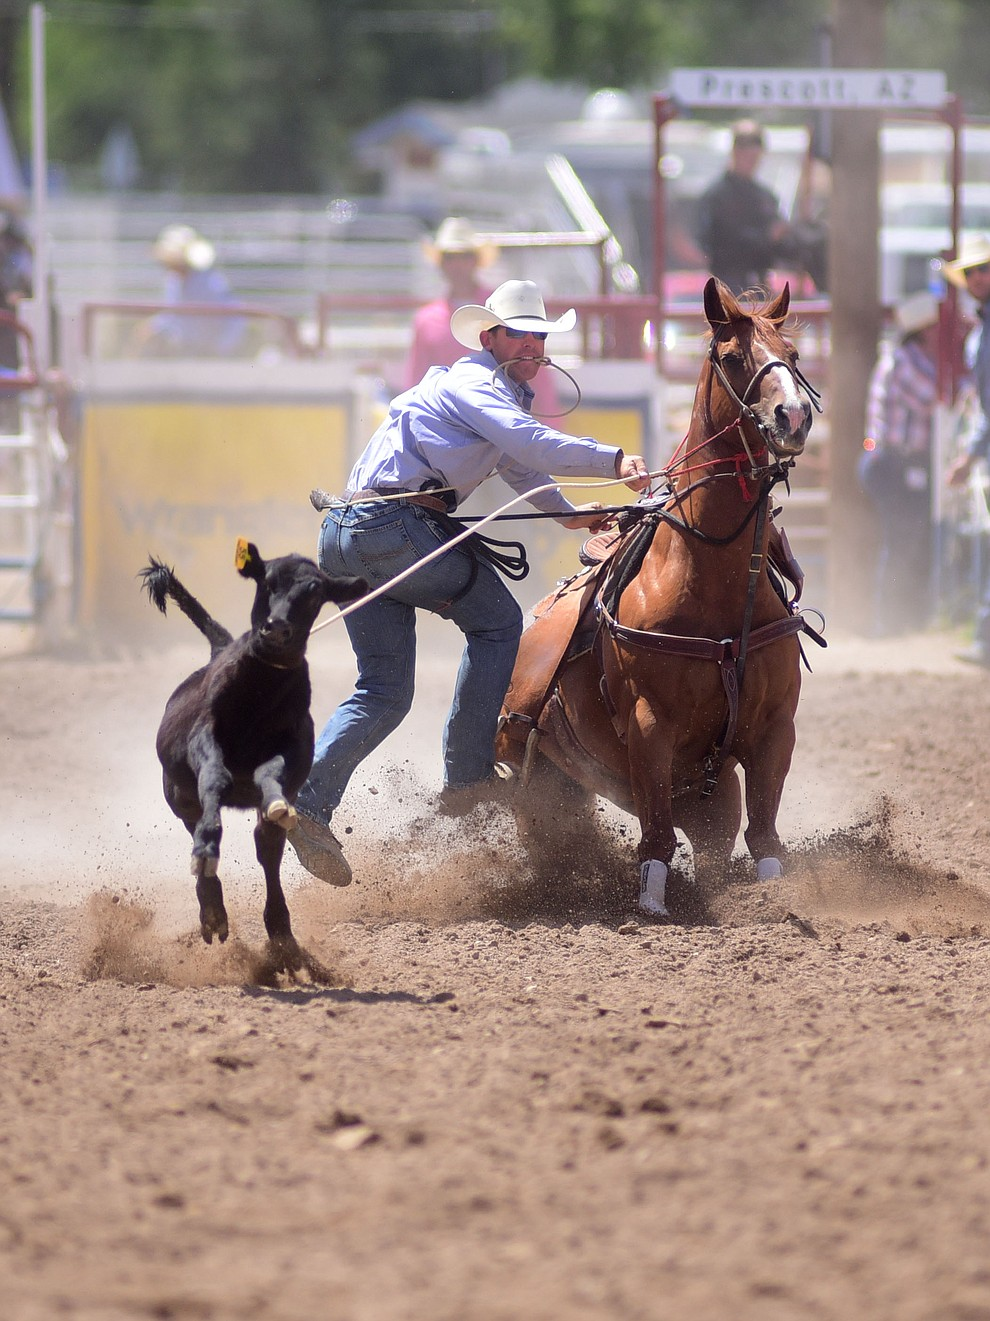 Ryle Smith has a 12.3 second run during the final performance of the 2016 Prescott Frontier Days Rodeo Monday afternoon. (Les Stukenberg/The Daily Courier)